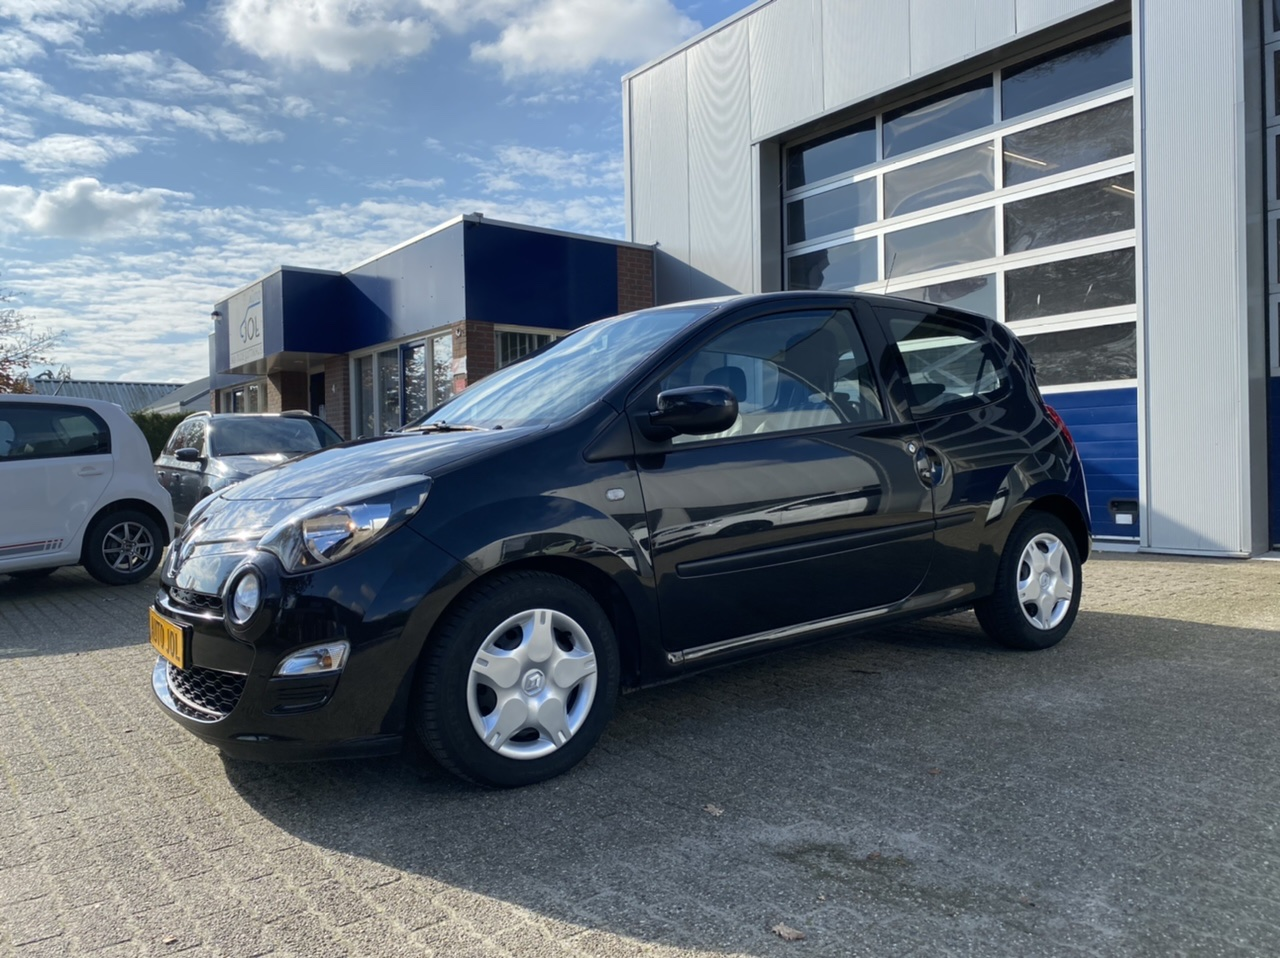 Renault Twingo 1.2 16V - cruise control - airco